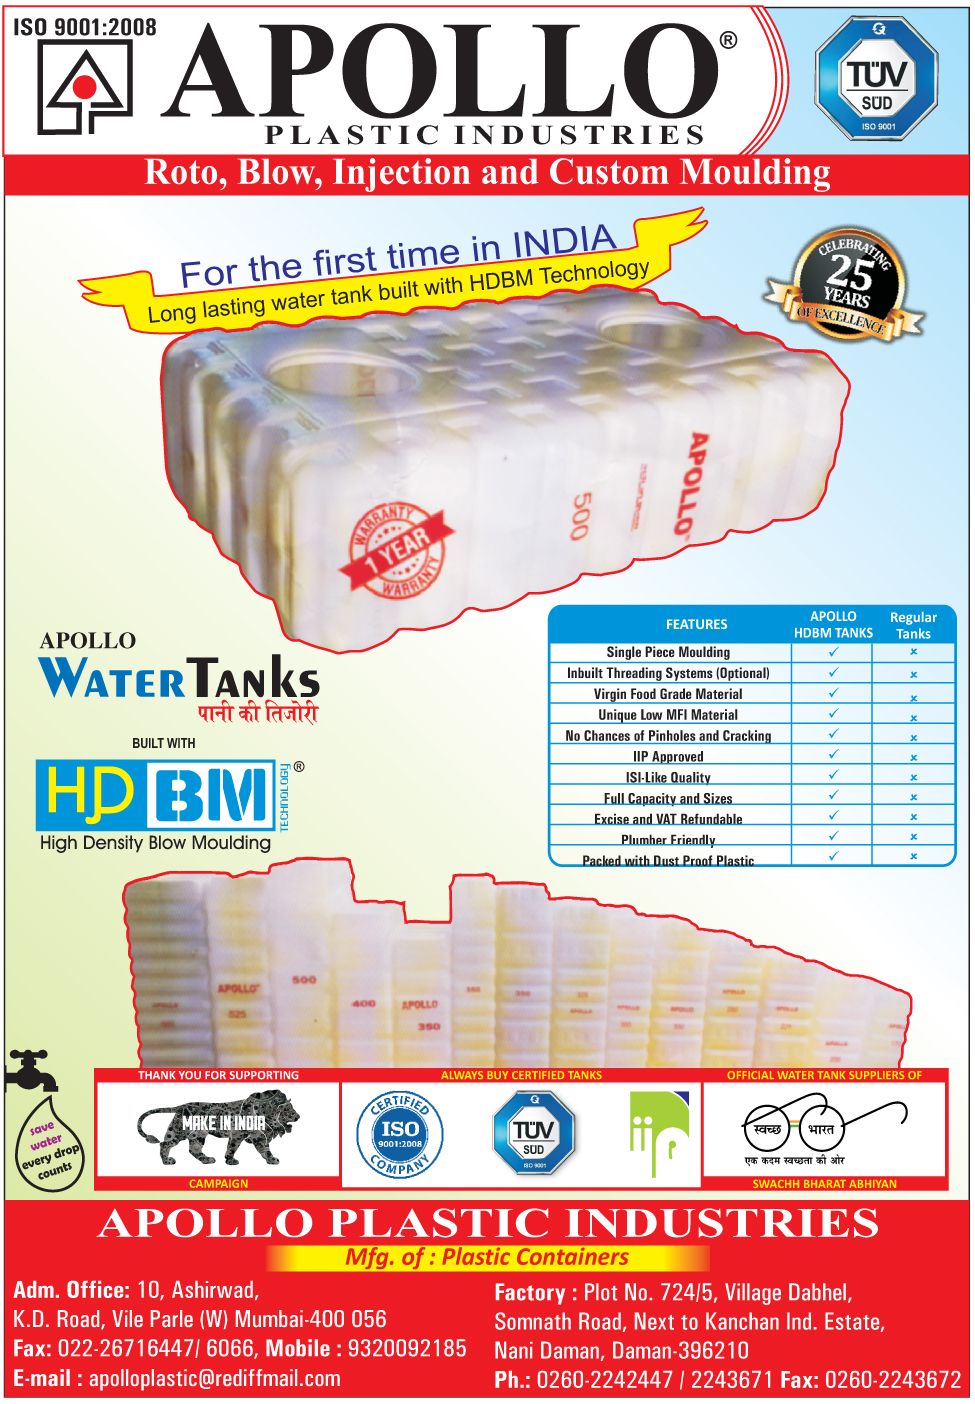 Plastic Containers, HDBM Tanks, High Density Blow Moulding Tanks, High Density Blow Molding Tanks